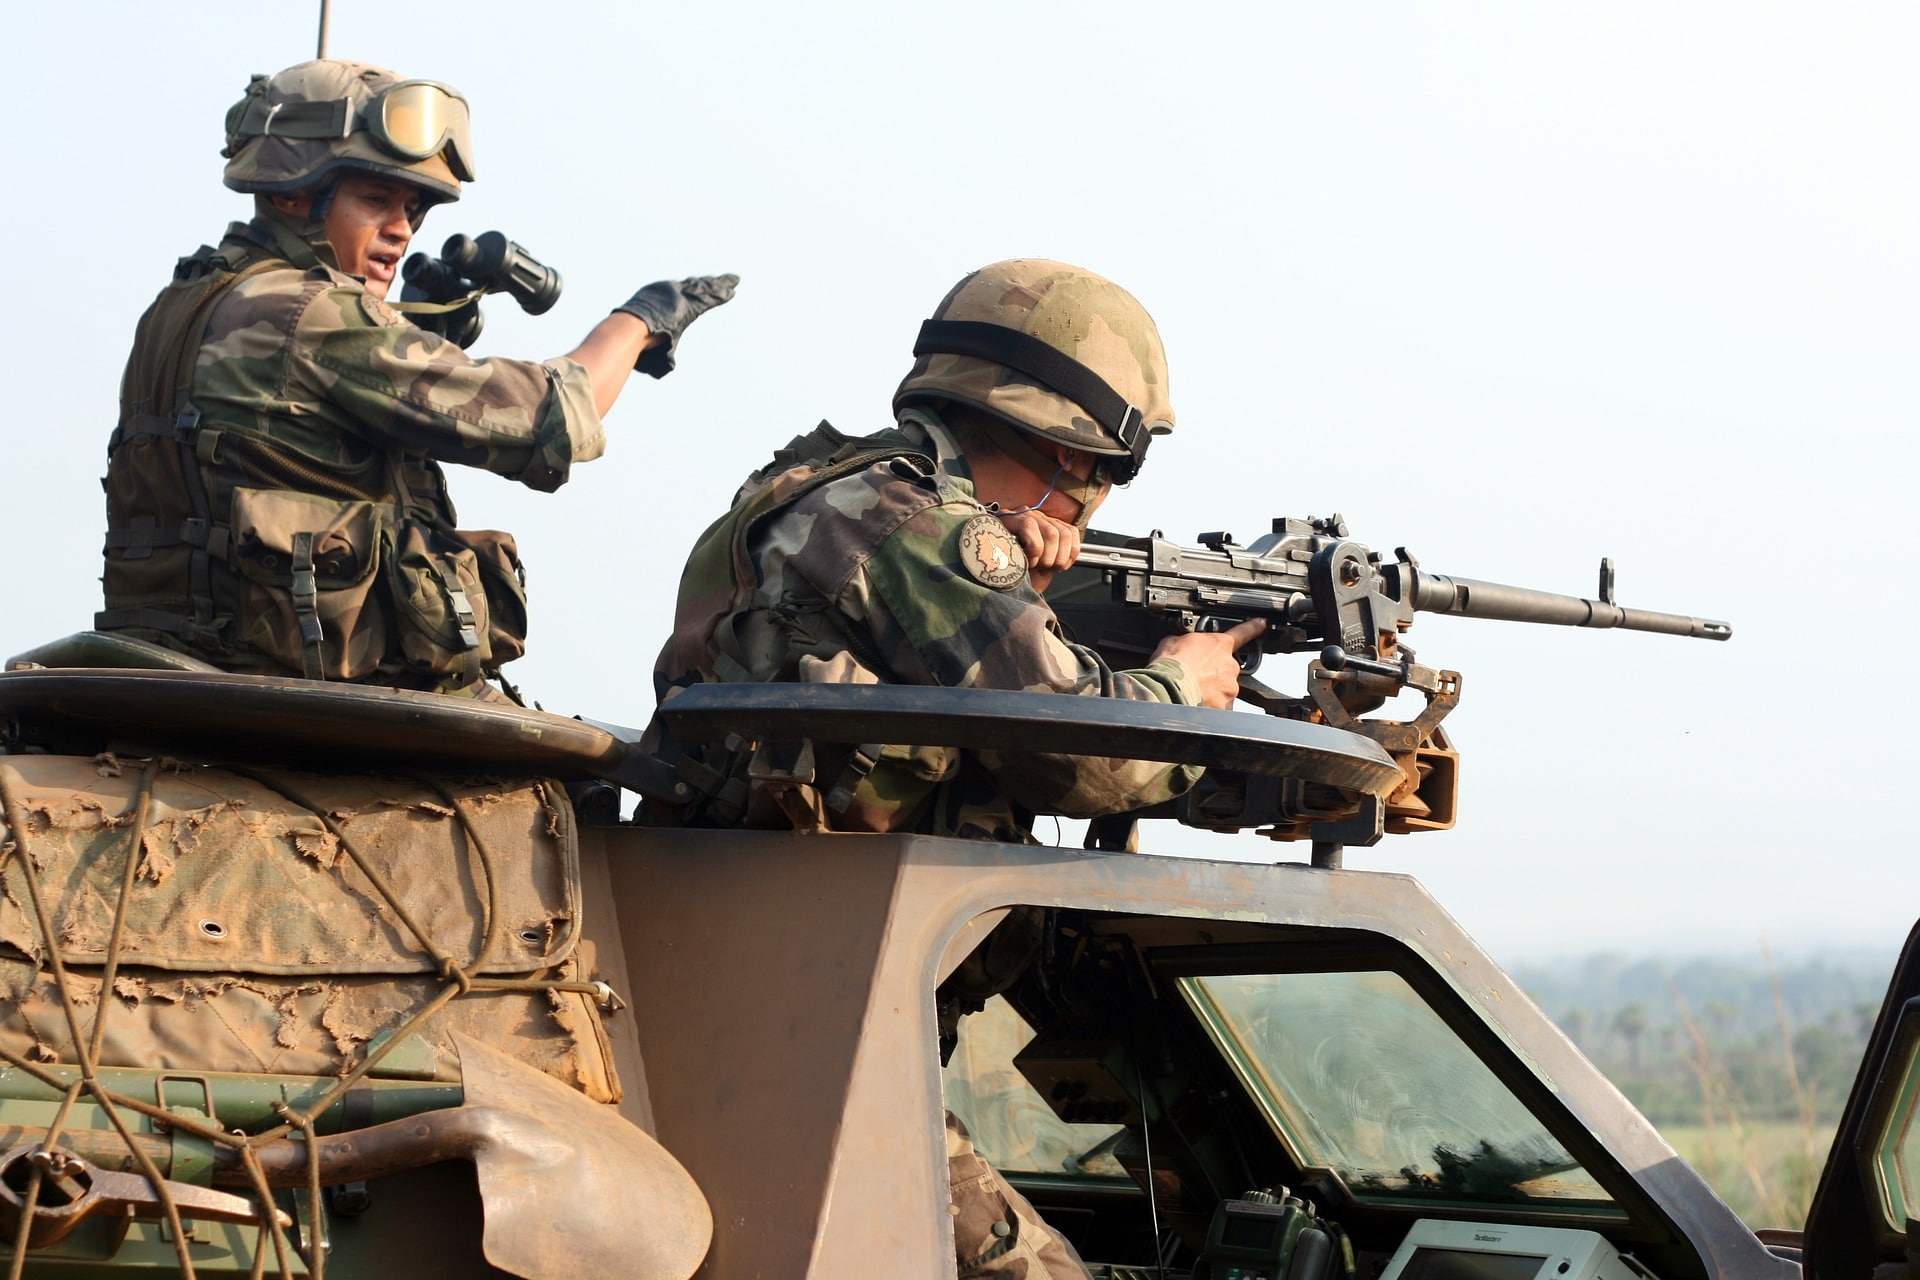 two soliders with weapons on an armored truck